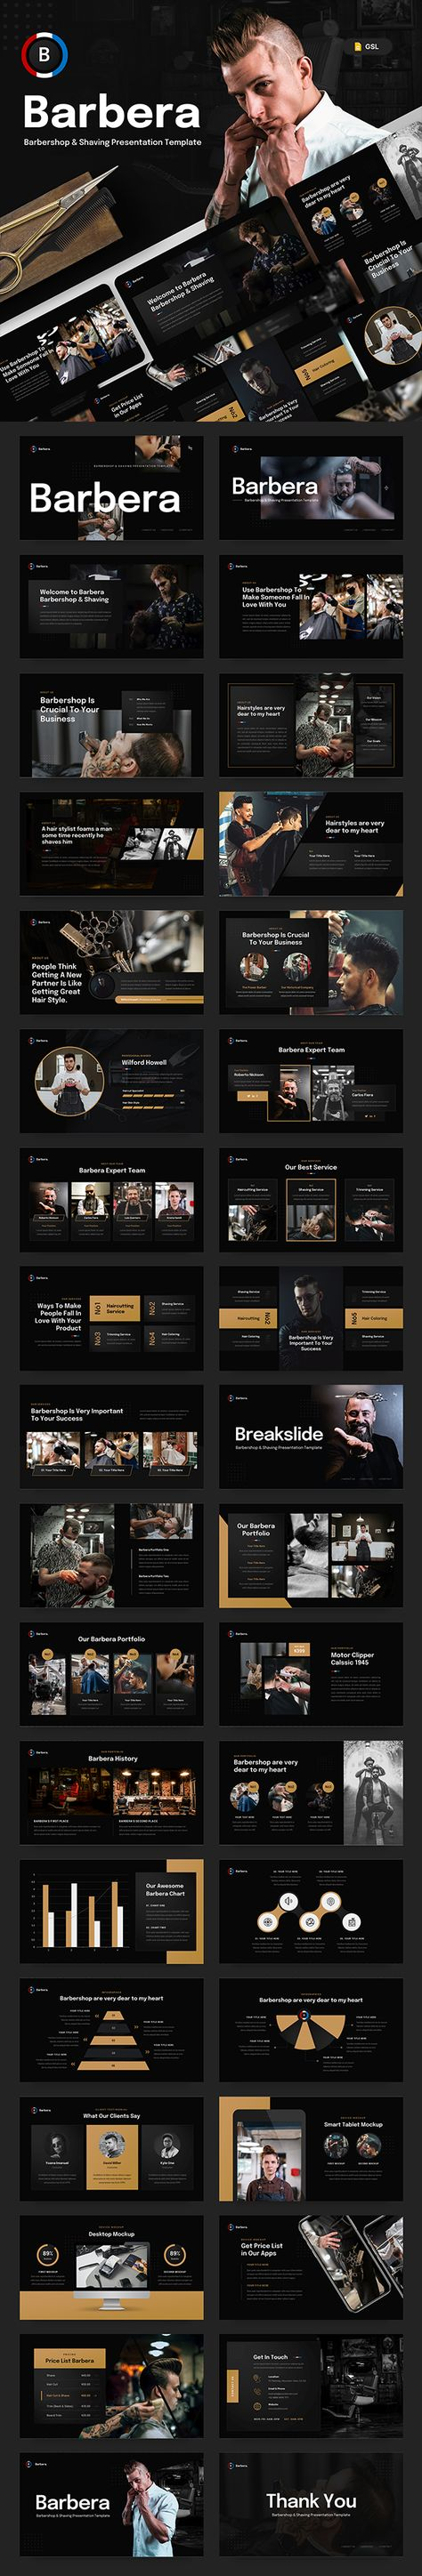 Barbera - Barbershop & Shaving Google Slides Presentation Template